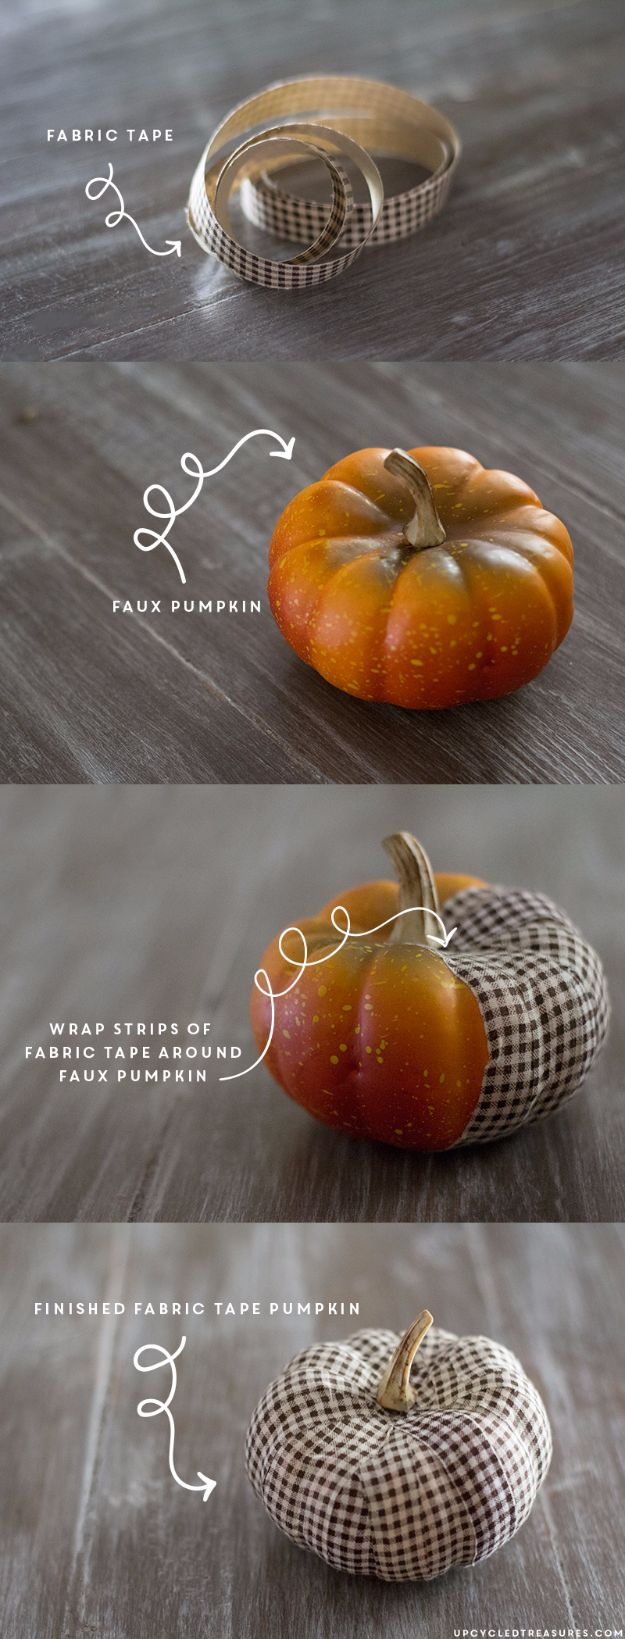 Best Crafts for Fall - DIY Fabric Tape Pumpkin - DIY Mason Jar Ideas, Dollar Store Crafts, Rustic Pumpkin Ideas, Wreaths, Candles and Wall Art, Centerpieces, Wedding Decorations, Homemade Gifts, Craft Projects with Leaves, Flowers and Burlap, Painted Art, Candles and Luminaries for Cool Home Decor - Quick and Easy Projects With Step by Step Tutorials and Instructions http://diyjoy.com/best-crafts-for-fall